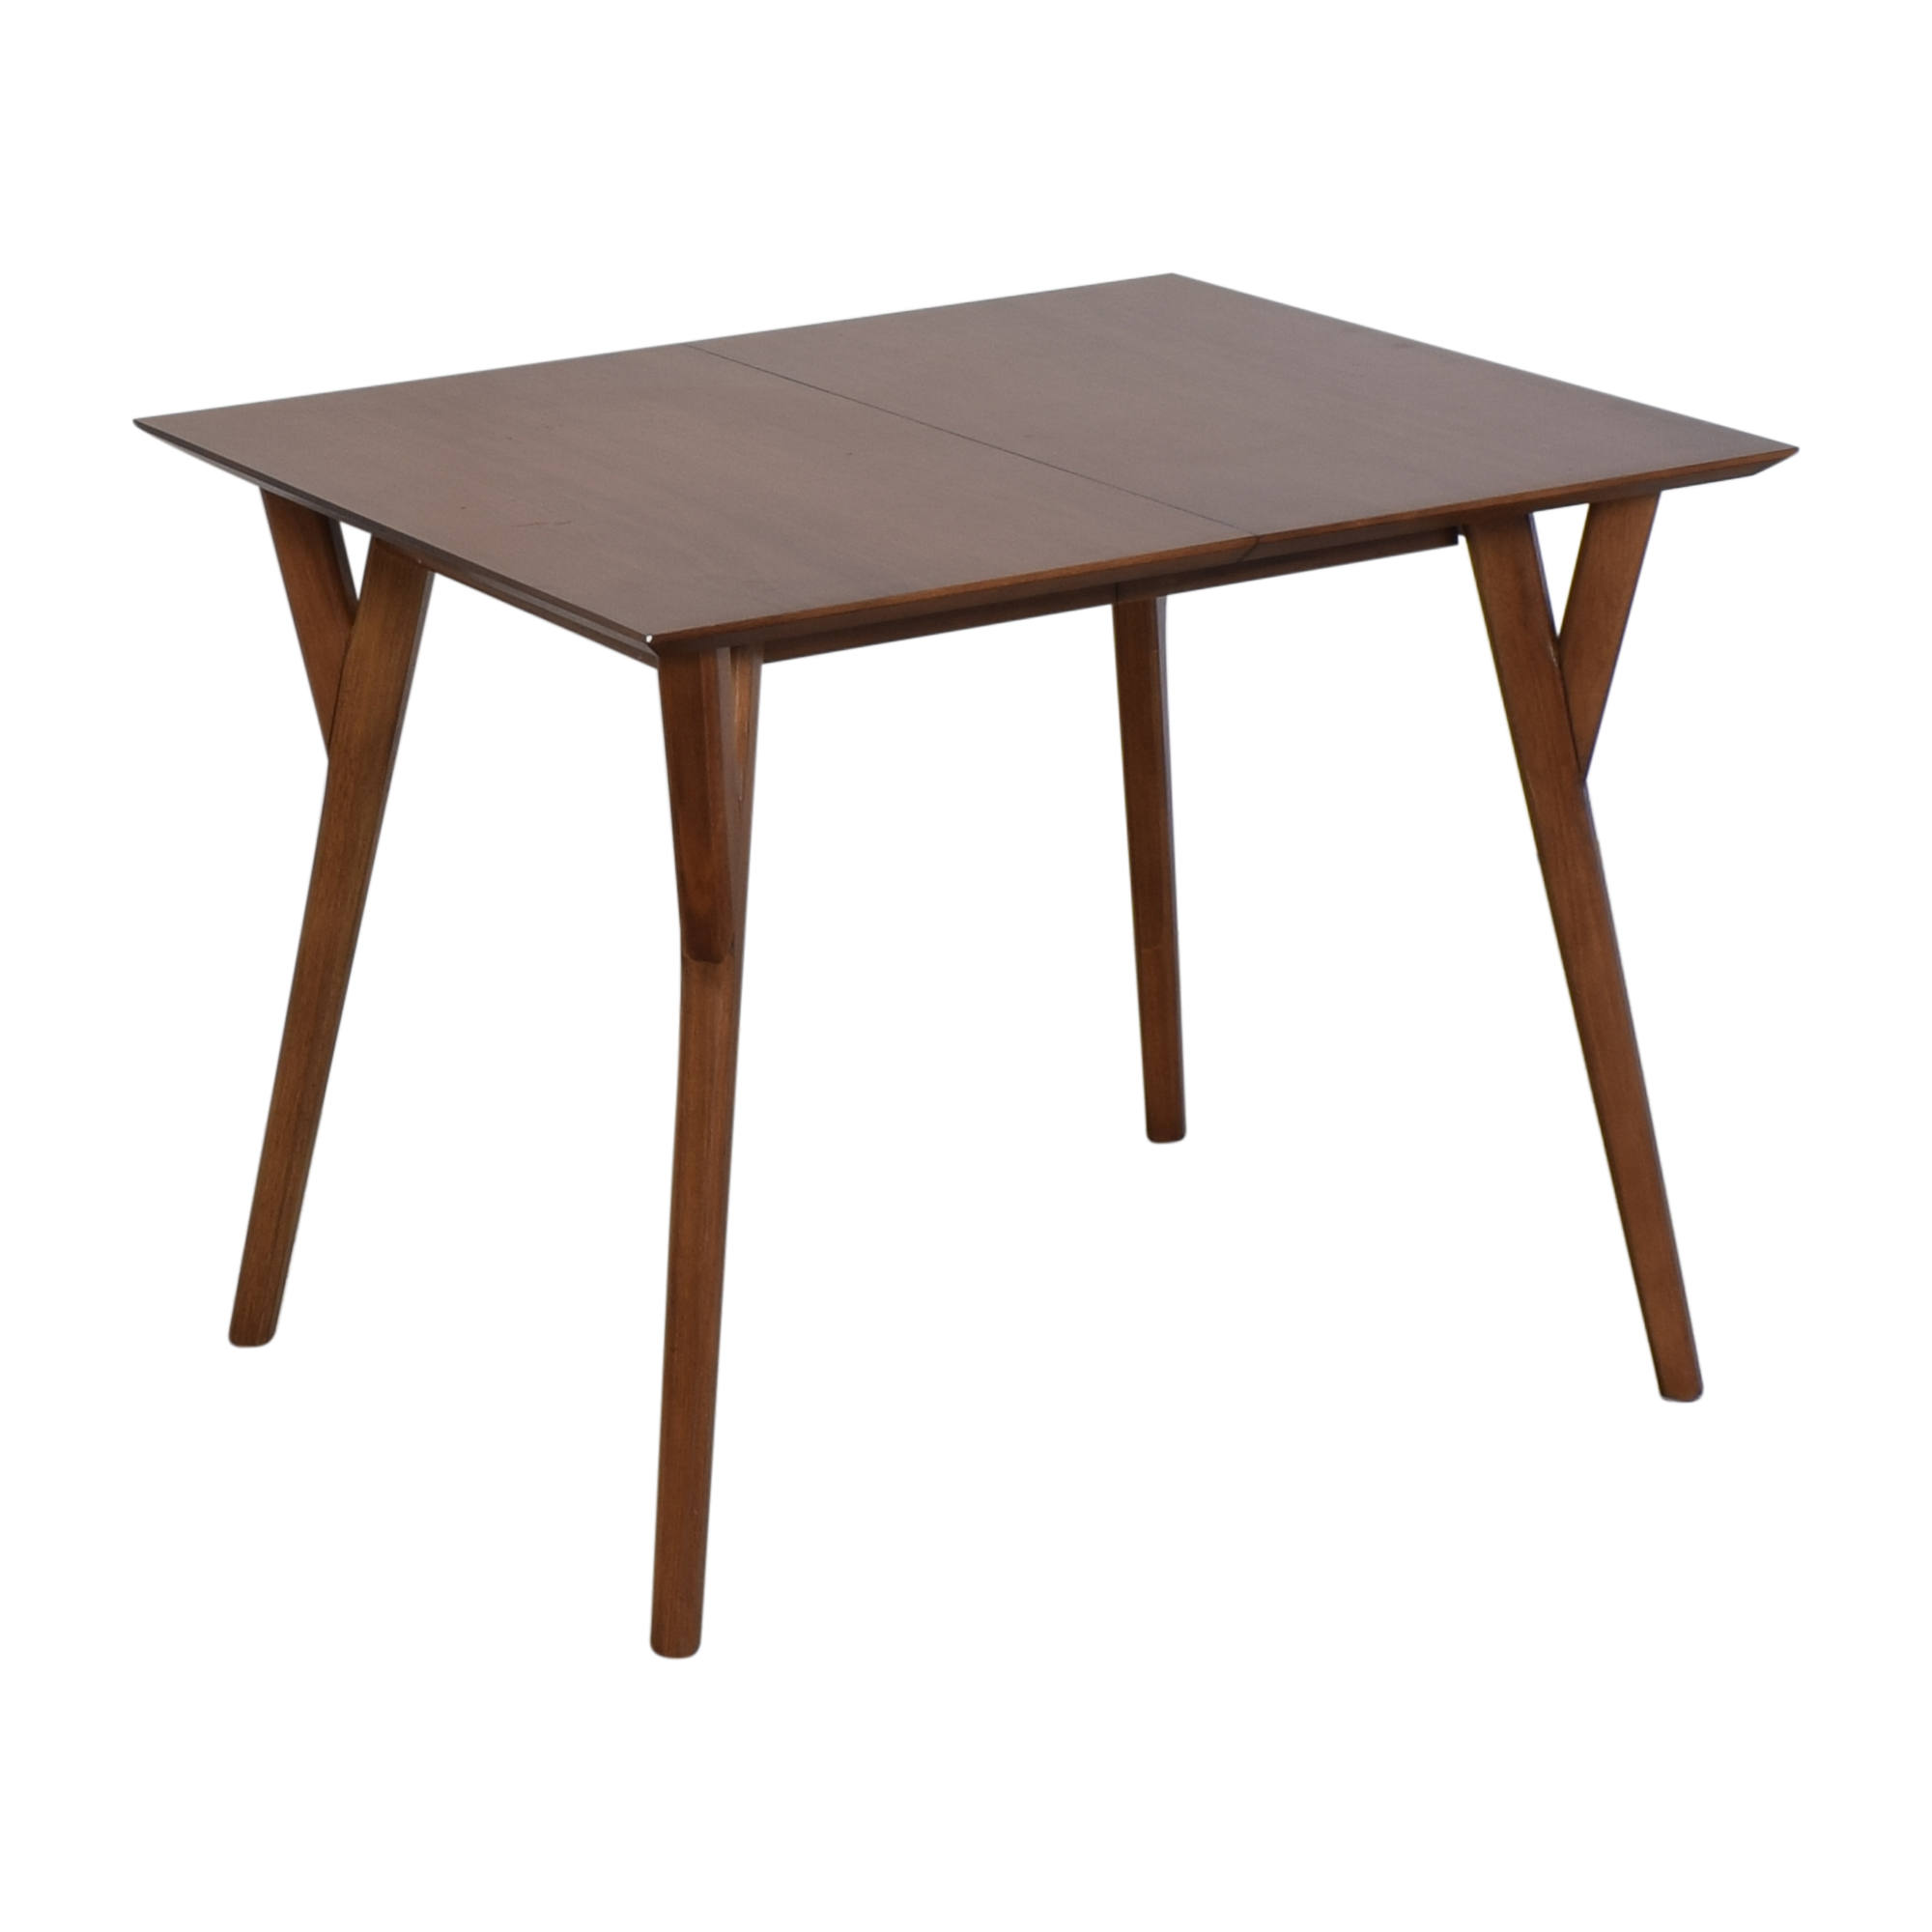 West Elm West Elm Mid-Century Expandable Dining Table Tables